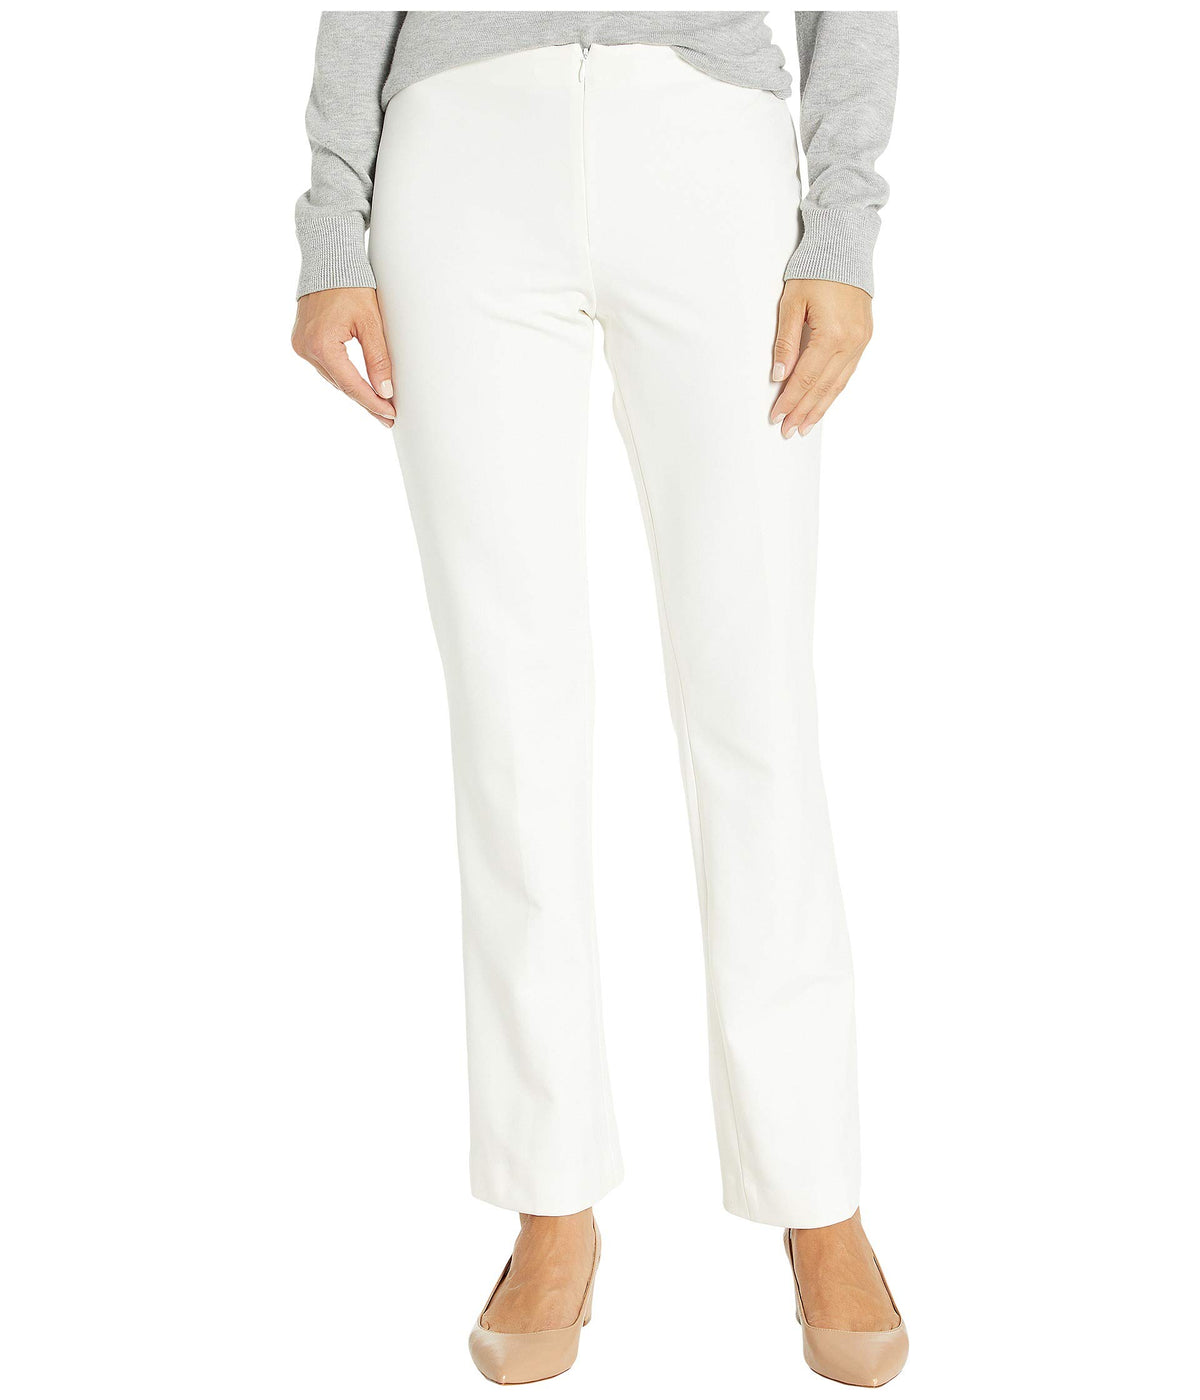 Tribeca Stretch Pants with Invisible Front Zip